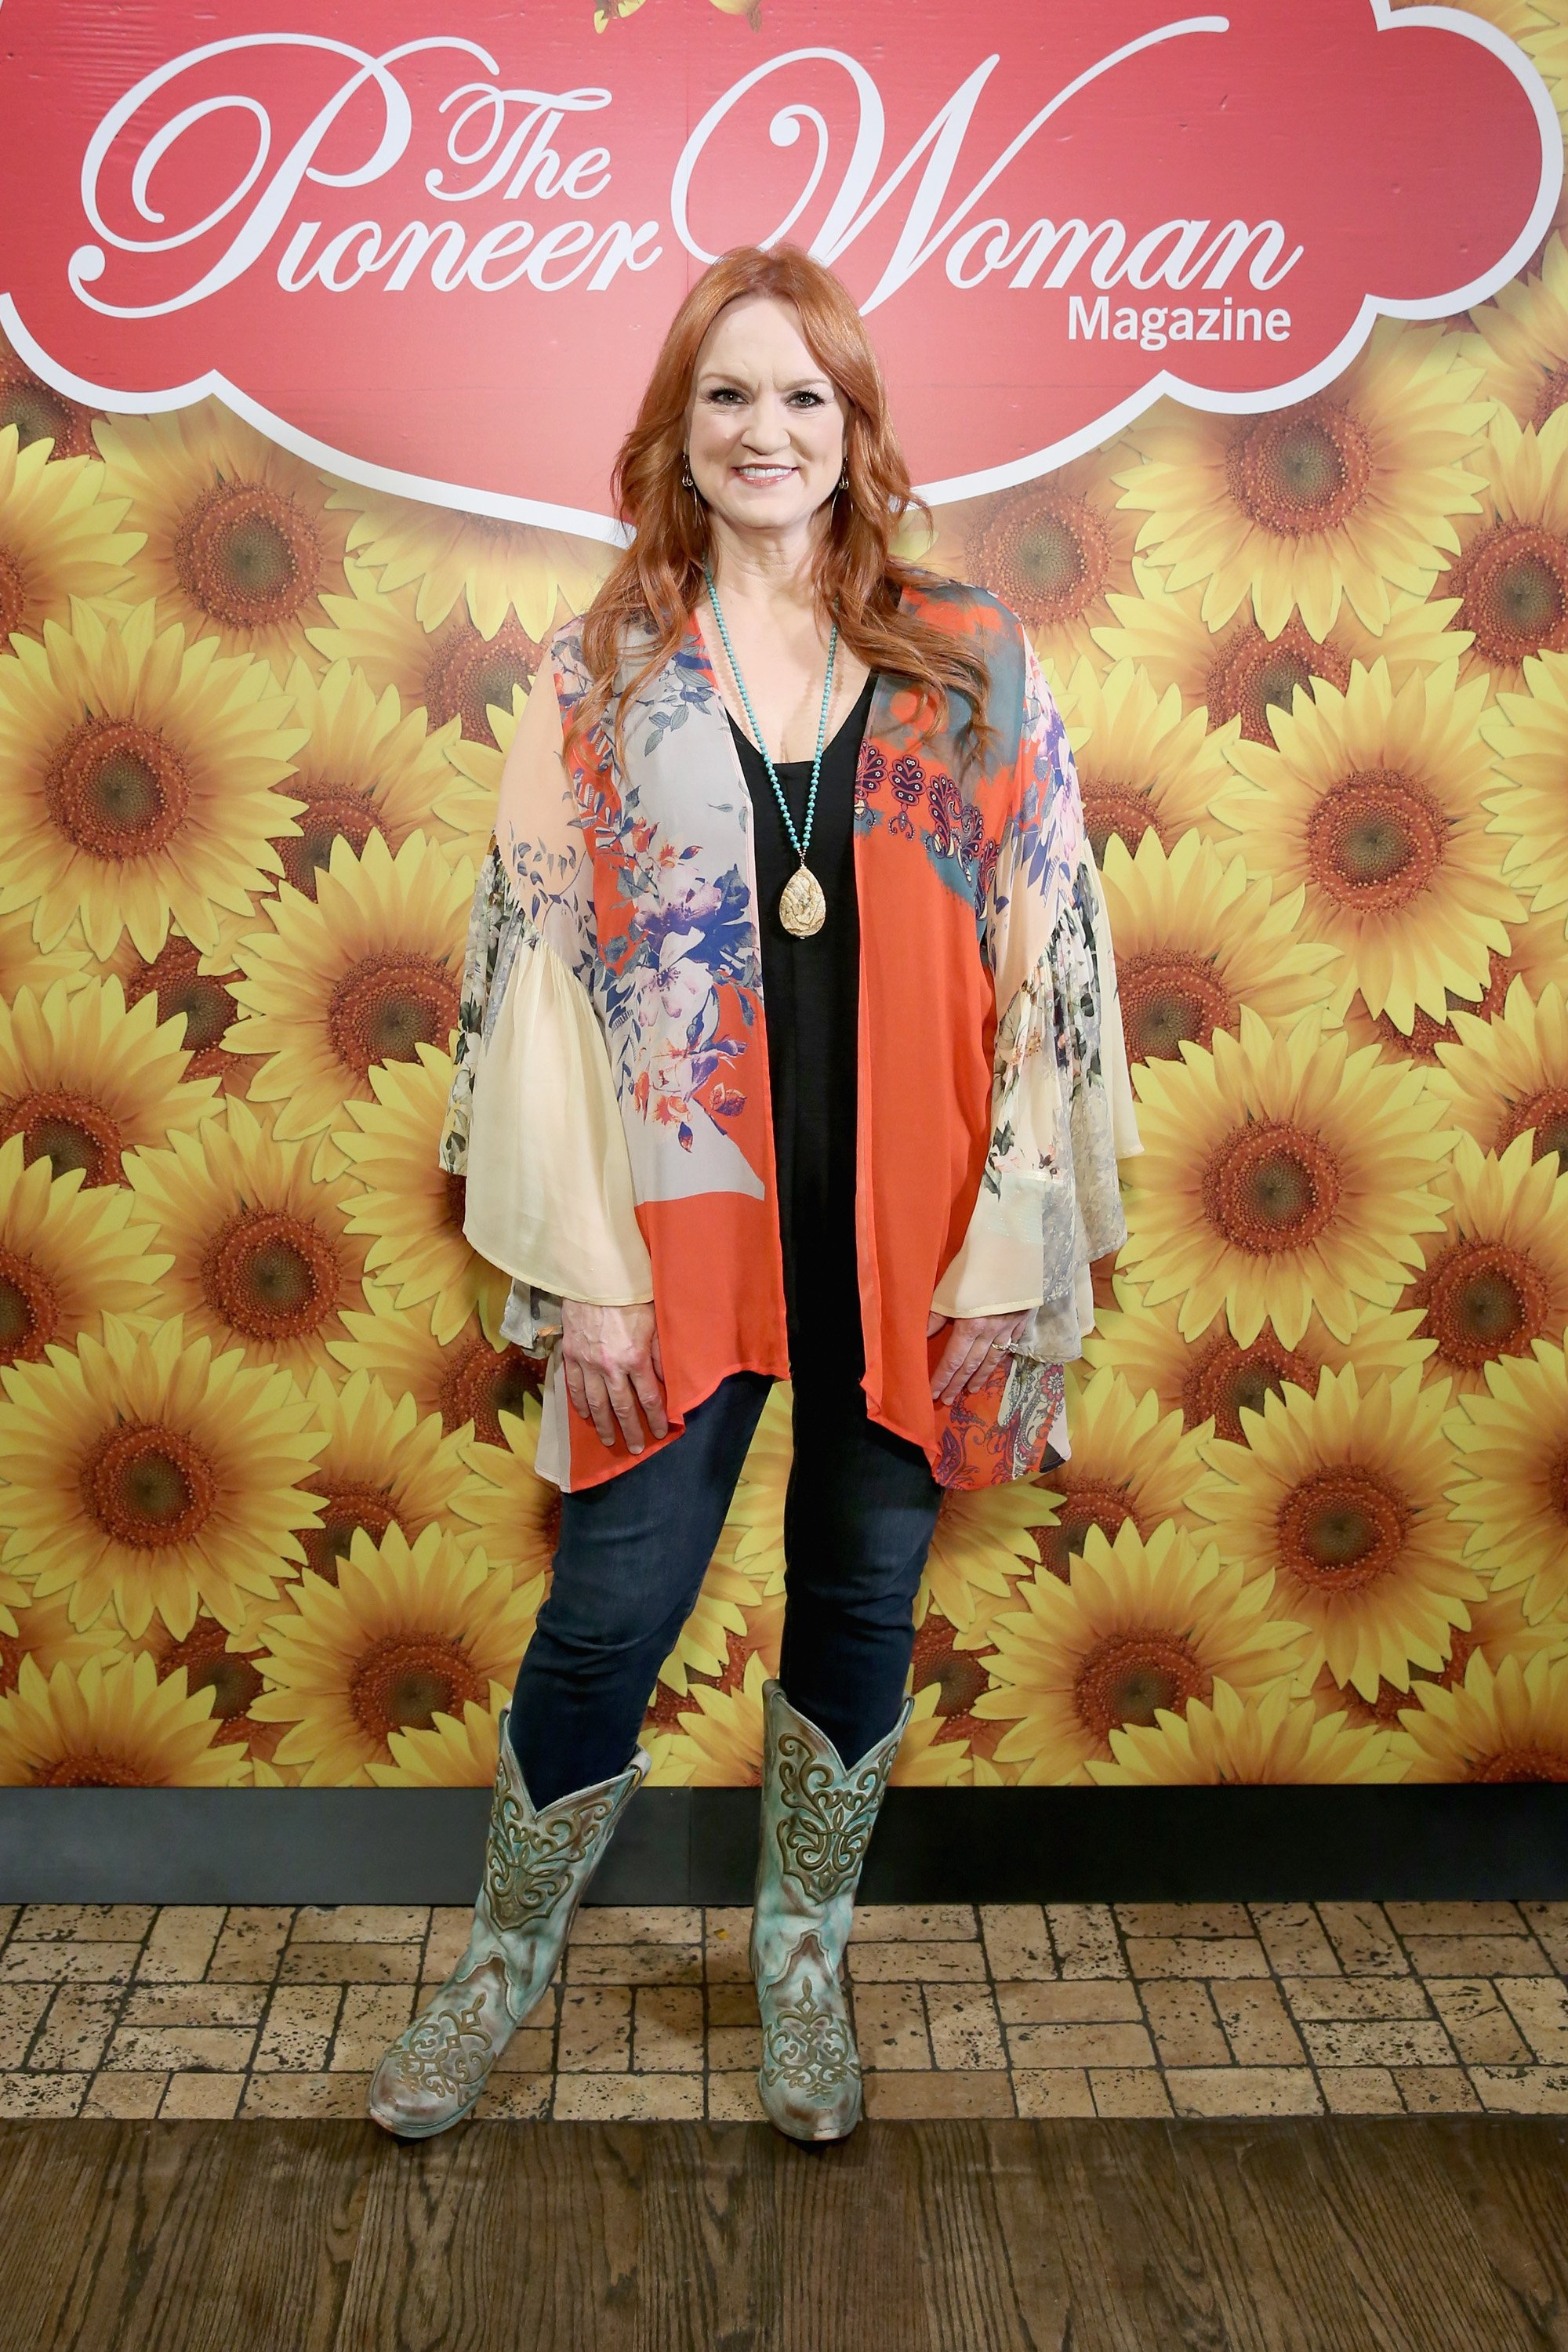 Ree Drummond attends The Pioneer Woman Magazine Celebration on June 6, 2017, in New York City. | Source: Getty Images.